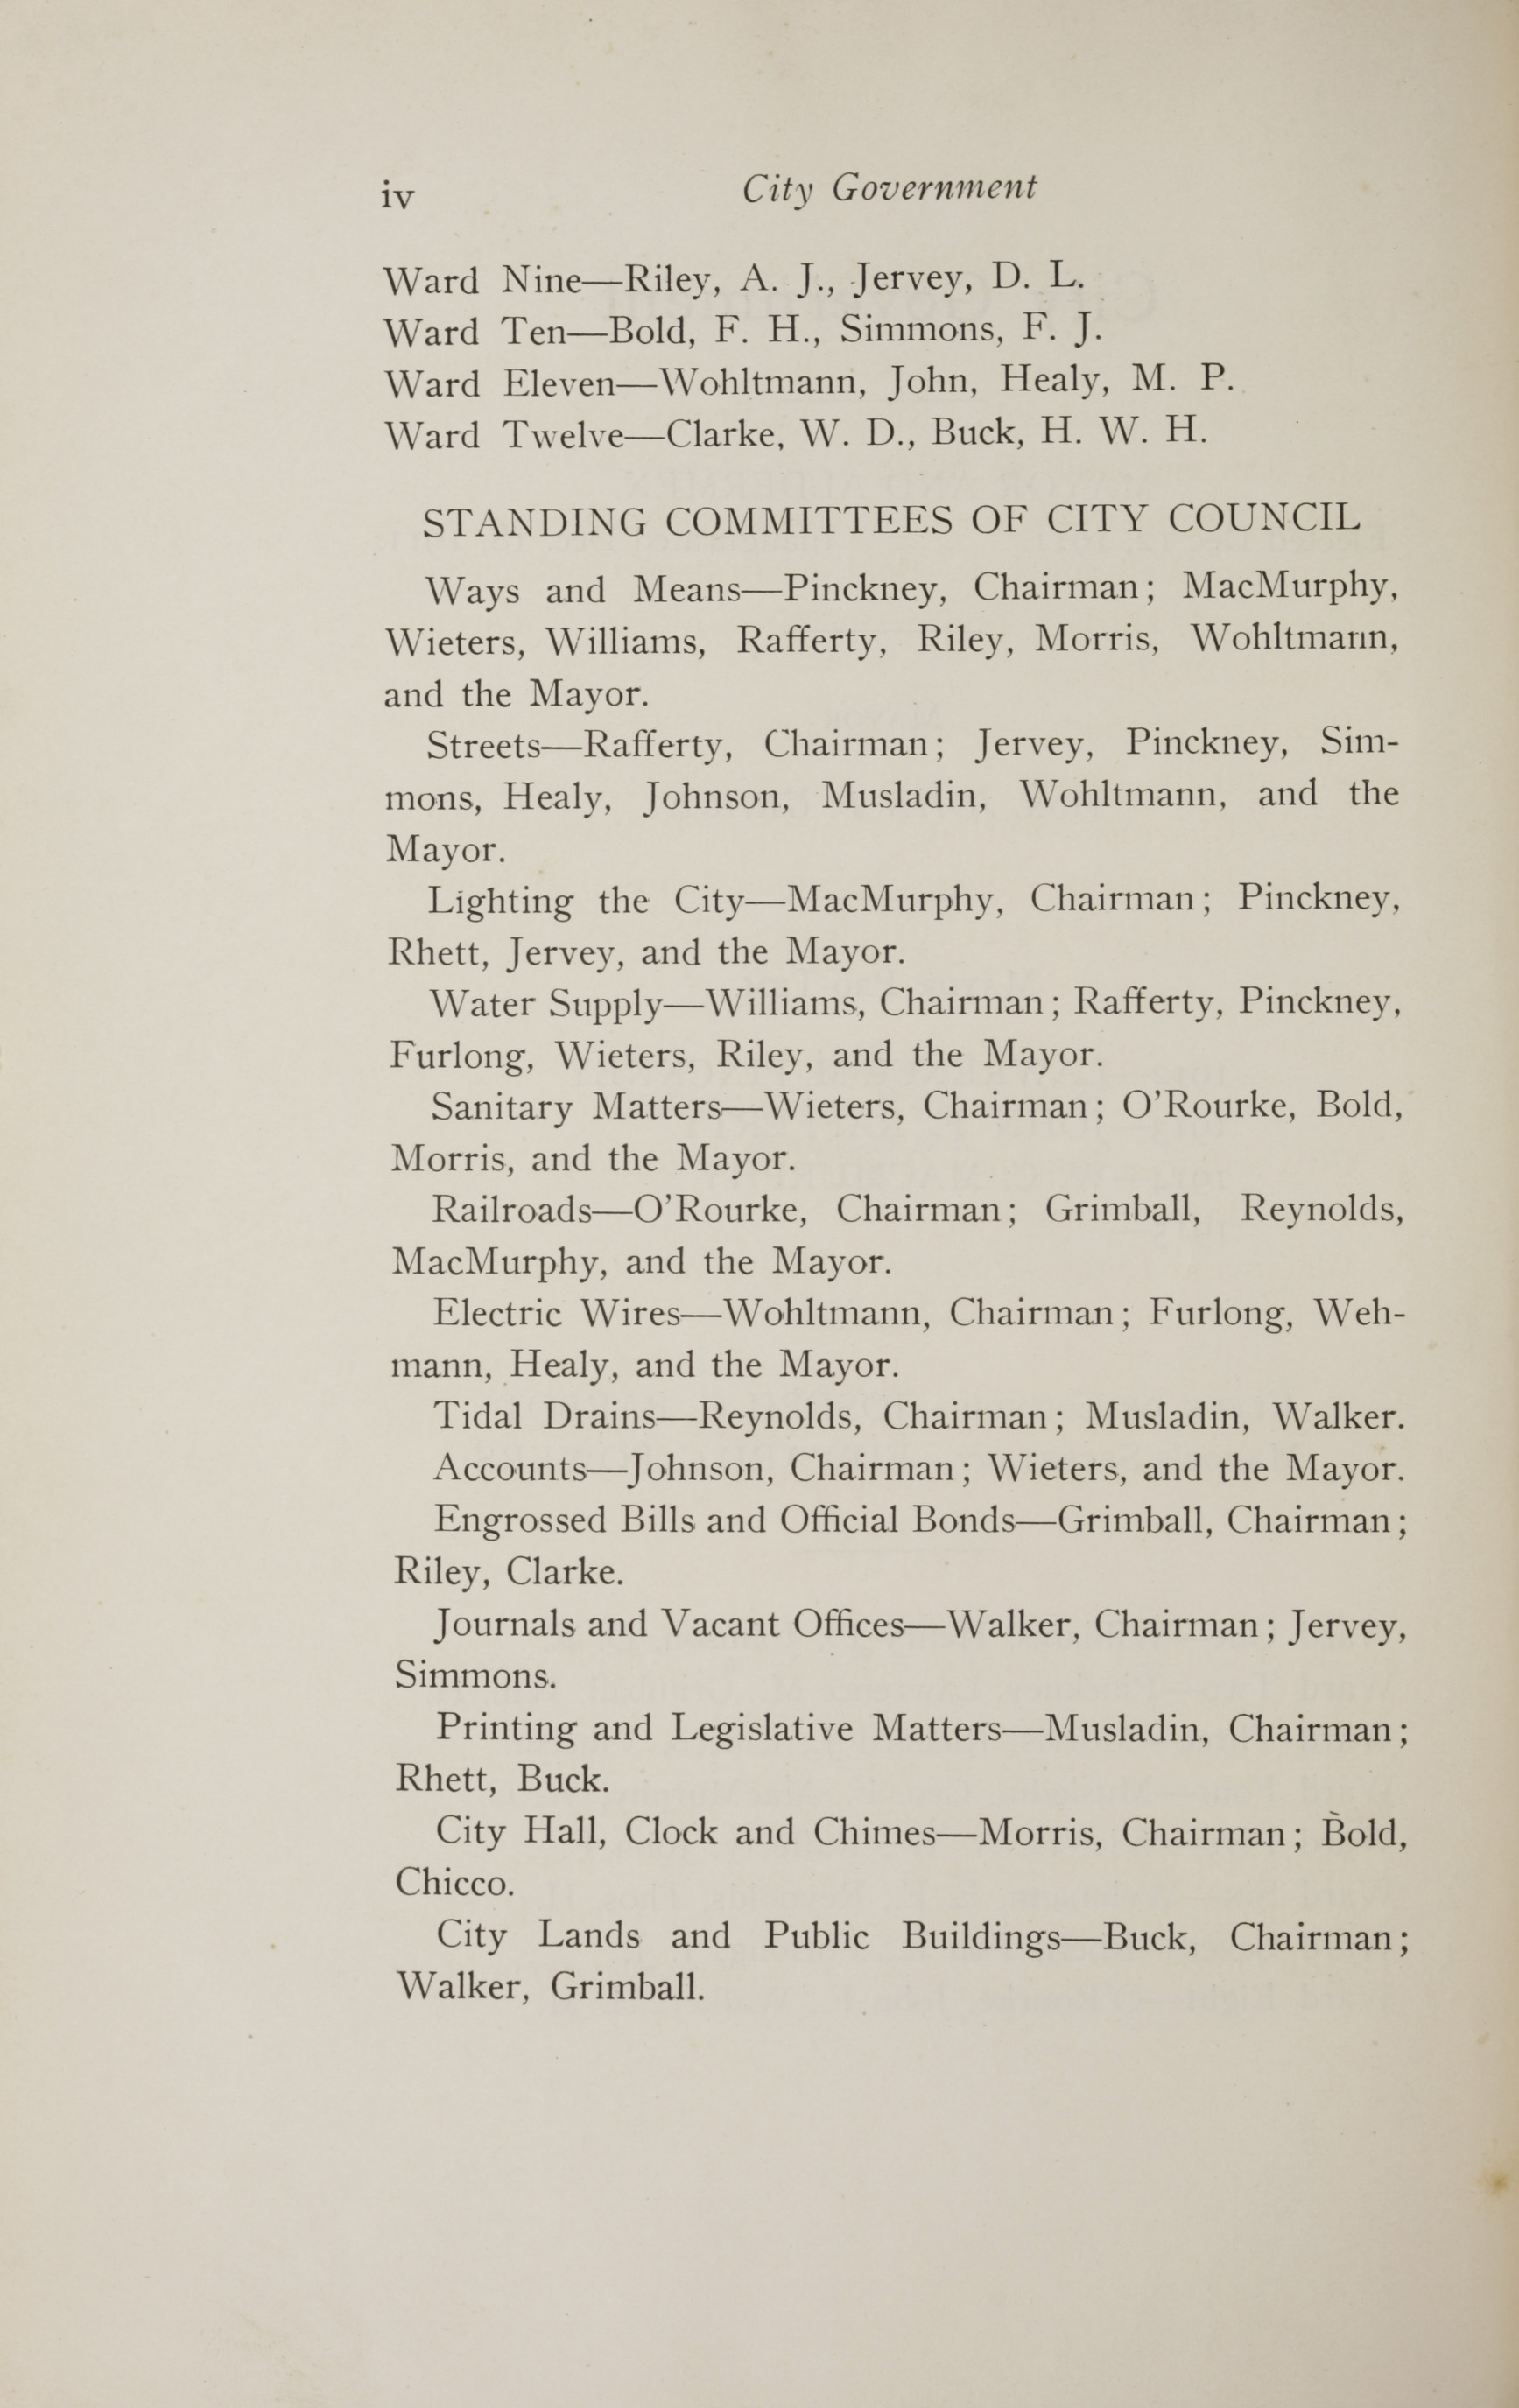 Charleston Yearbook, 1914, page iv